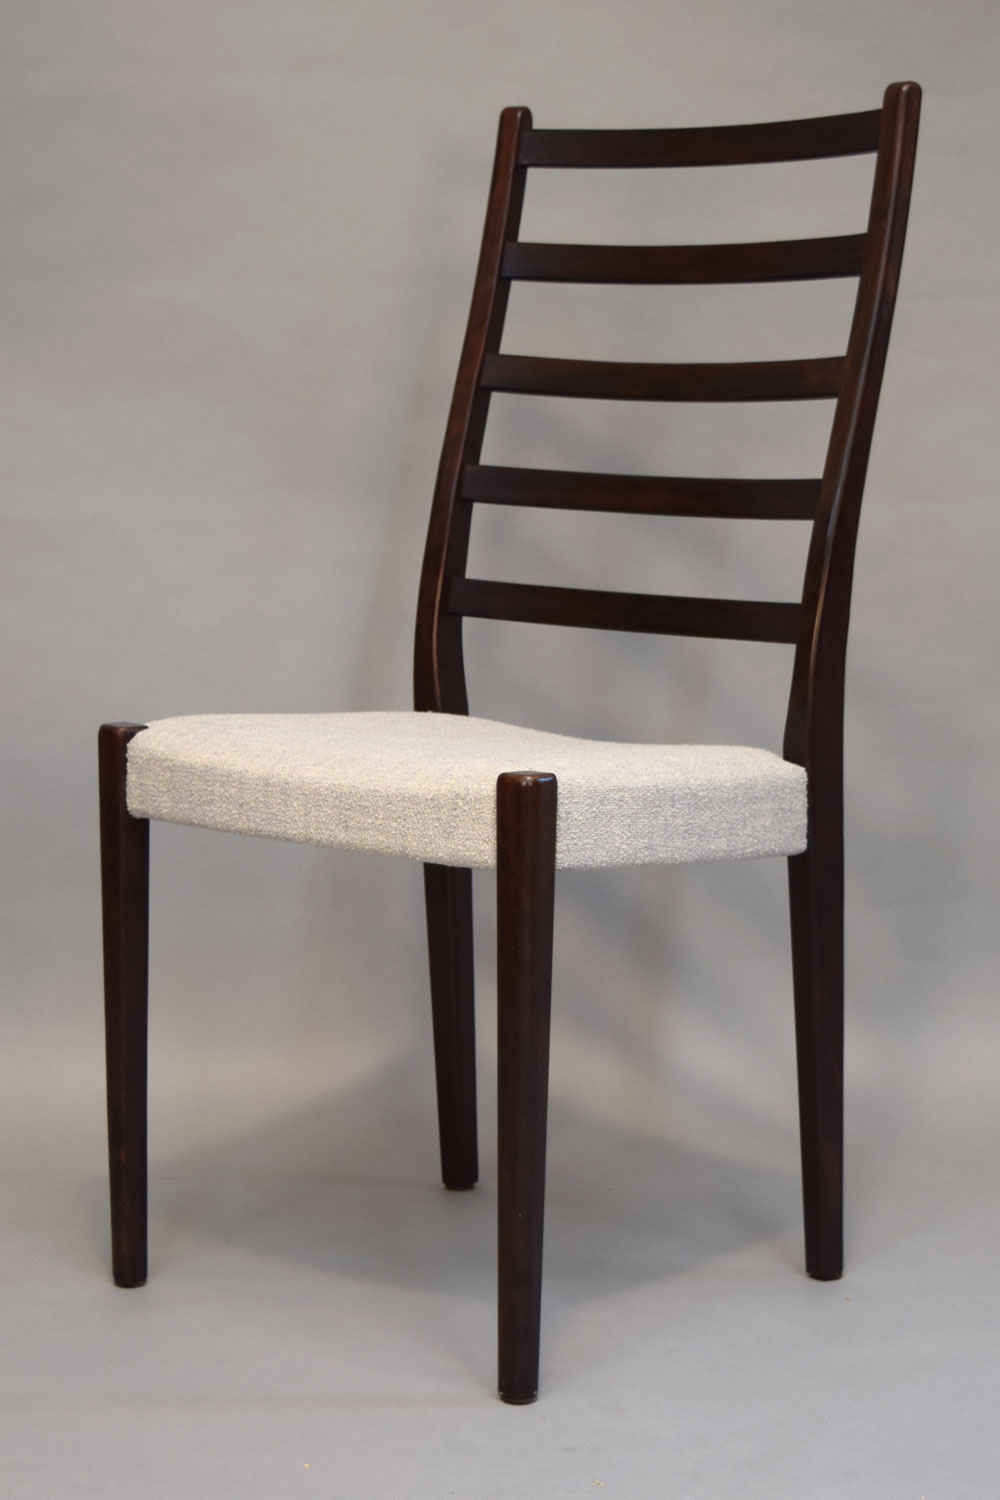 Set8 Dining Chairs By Svegards Markaryd Sweden SOLD